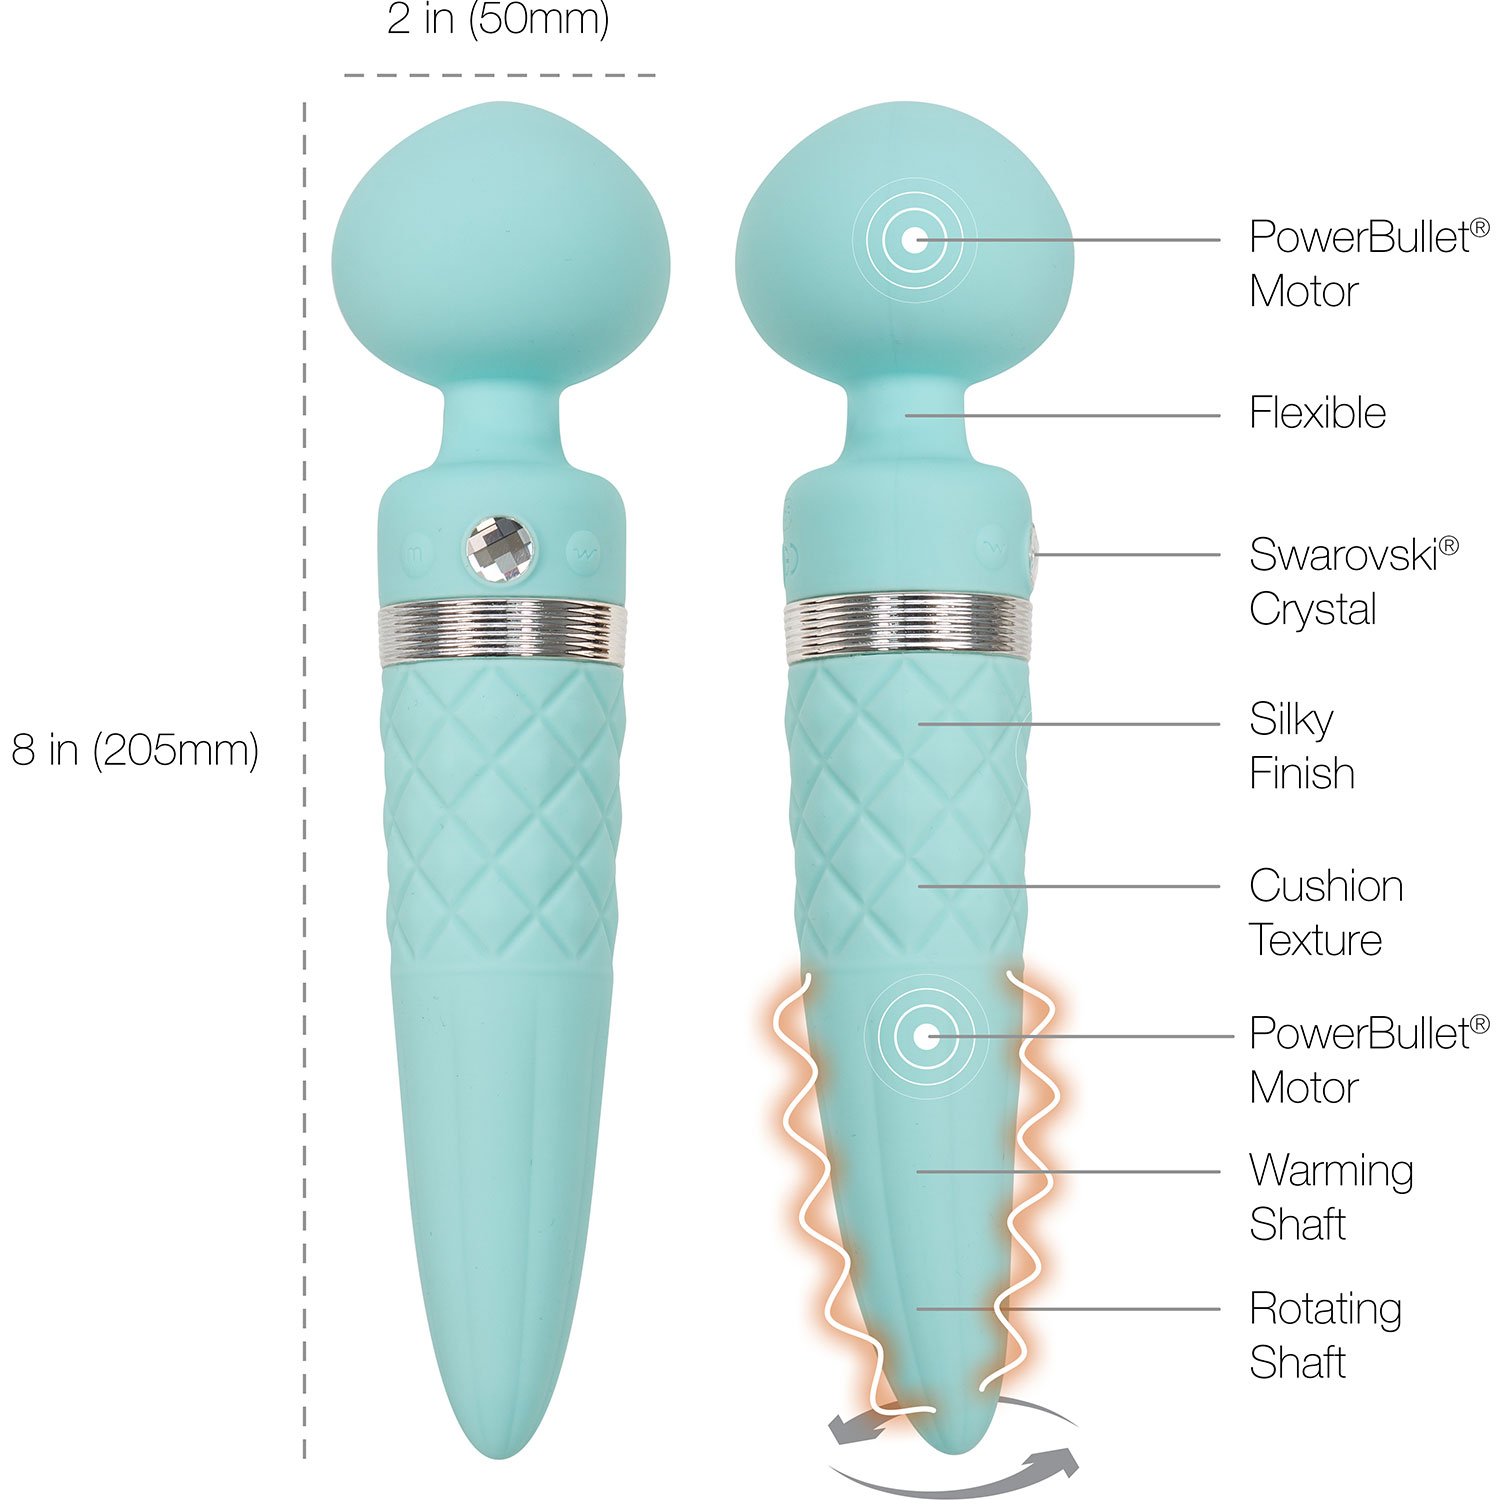 Pillow Talk Sultry Silicone Waterproof Rechargeable Wand Style Vibrator - Measurements